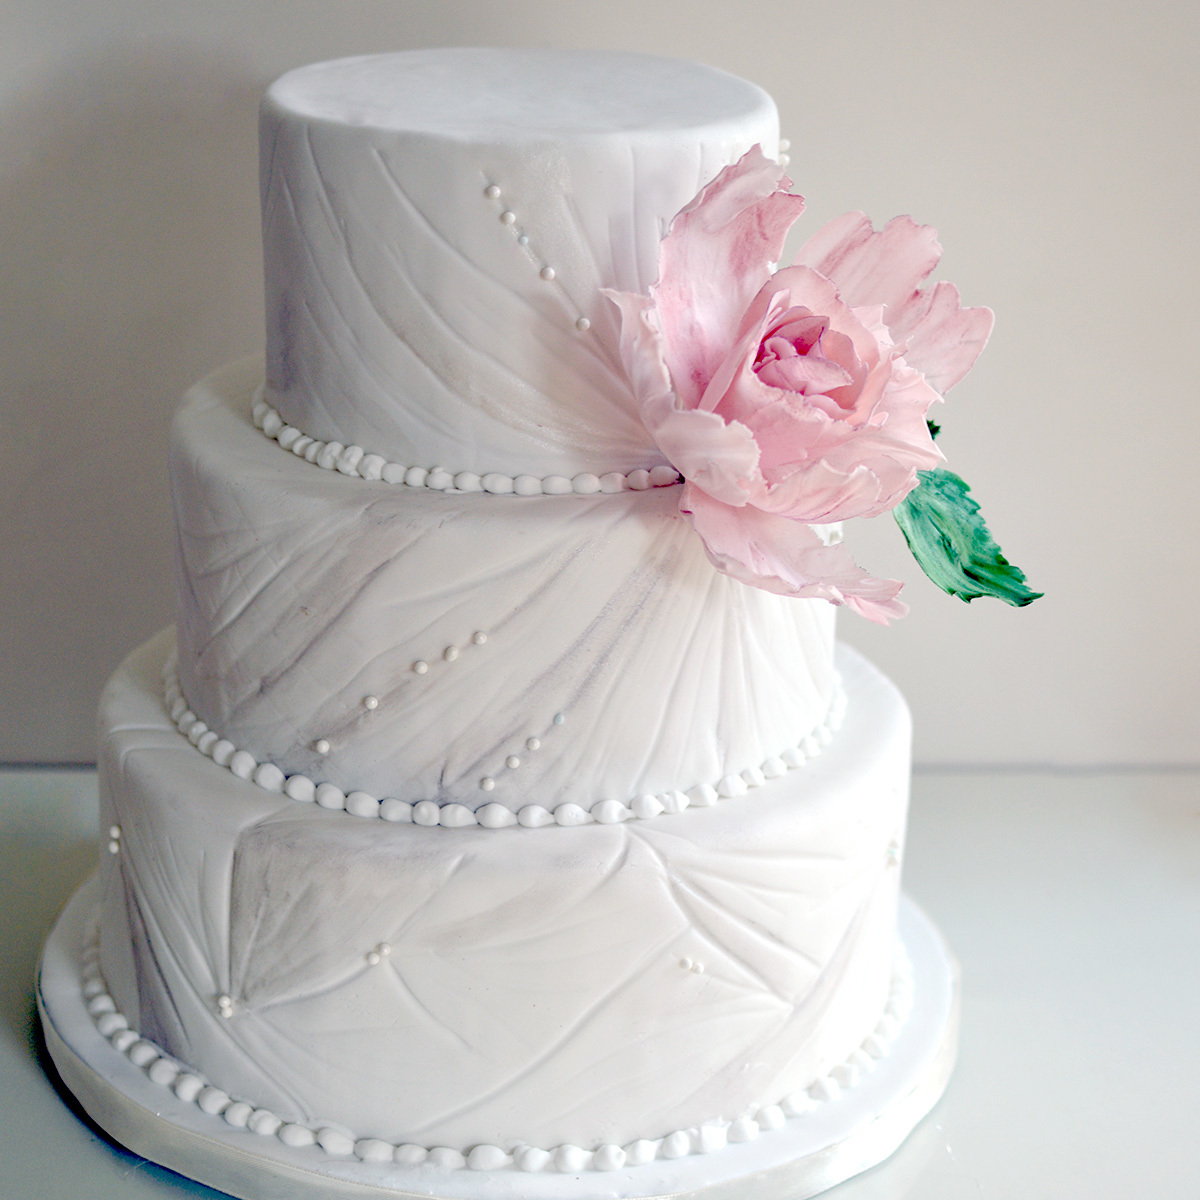 Quilted textured wedding cake